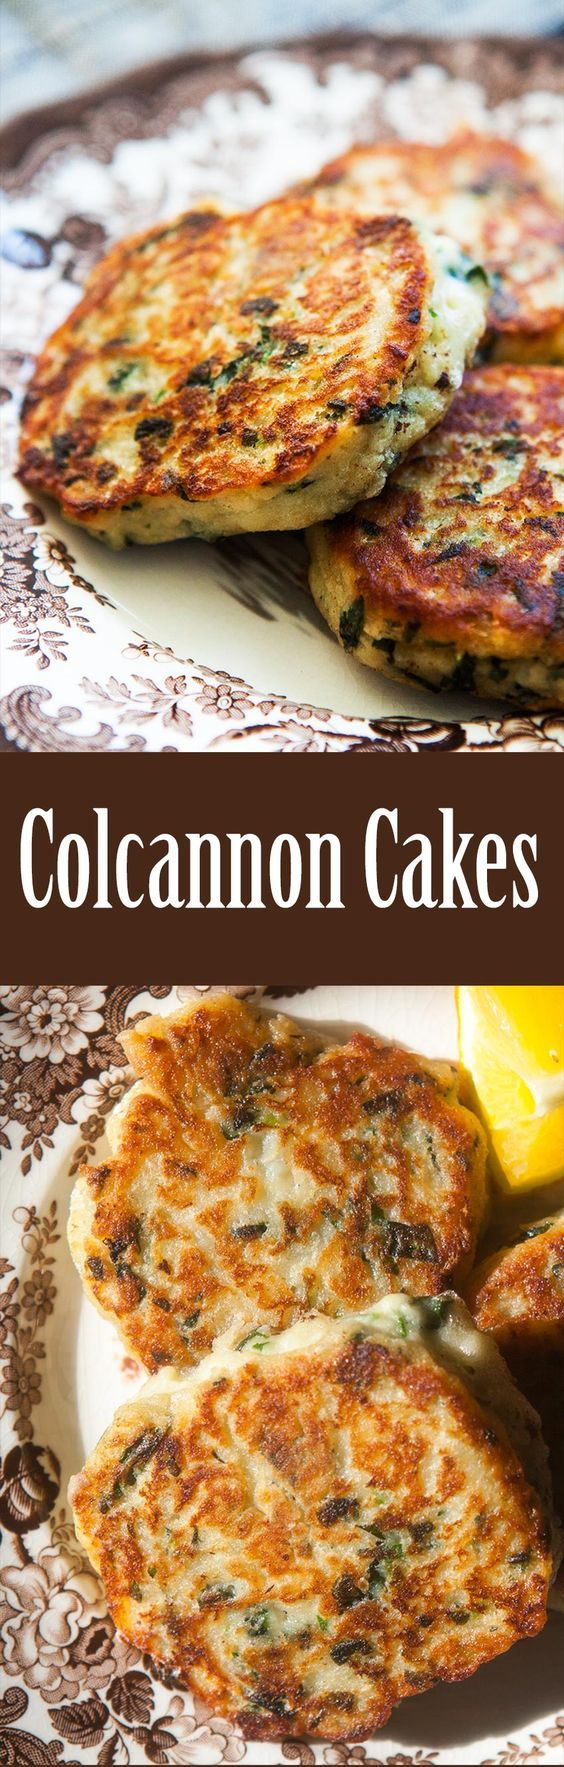 Colcannon cakes! These are fried potato patties made with colcannon—mashed potatoes with kale and green onions. So good! Perfect for St Patrick's Day. On SimplyRecipes.com